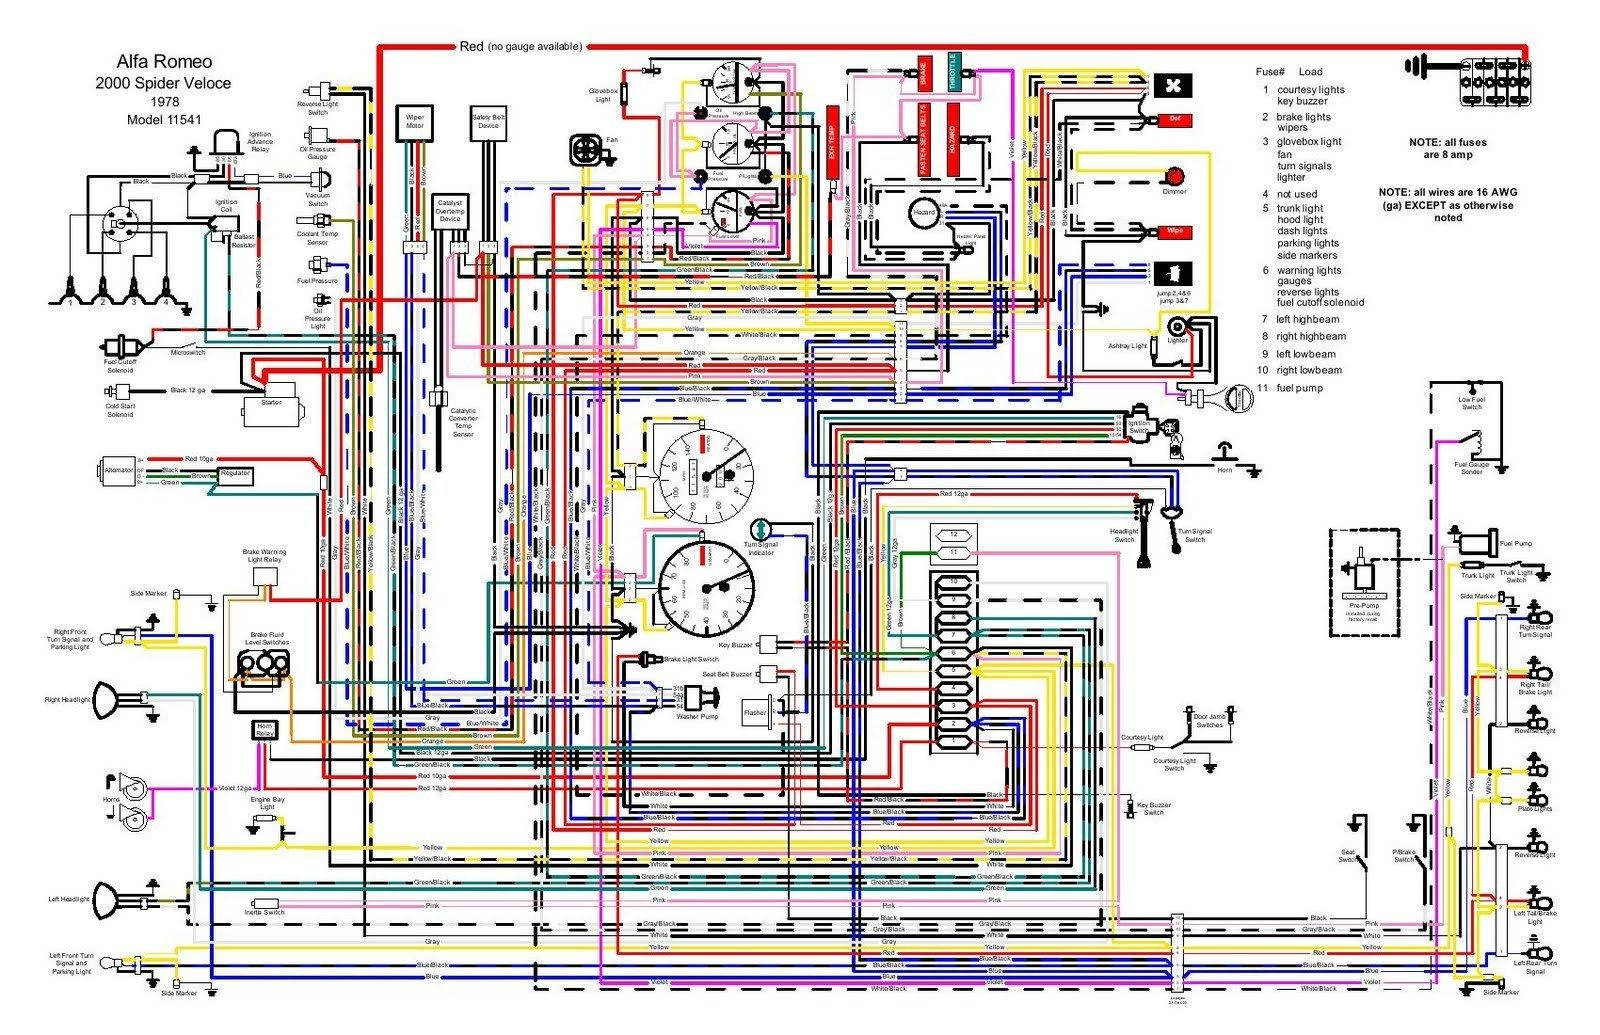 [ZTBE_9966]  Auto Electrical Wiring Schematic Database 0 | Hastalavista for Auto  Electrical Schematic | Electrical wiring diagram, Electrical diagram,  Trailer wiring diagram | About Automotive Electrical Wiring Schematics |  | Pinterest